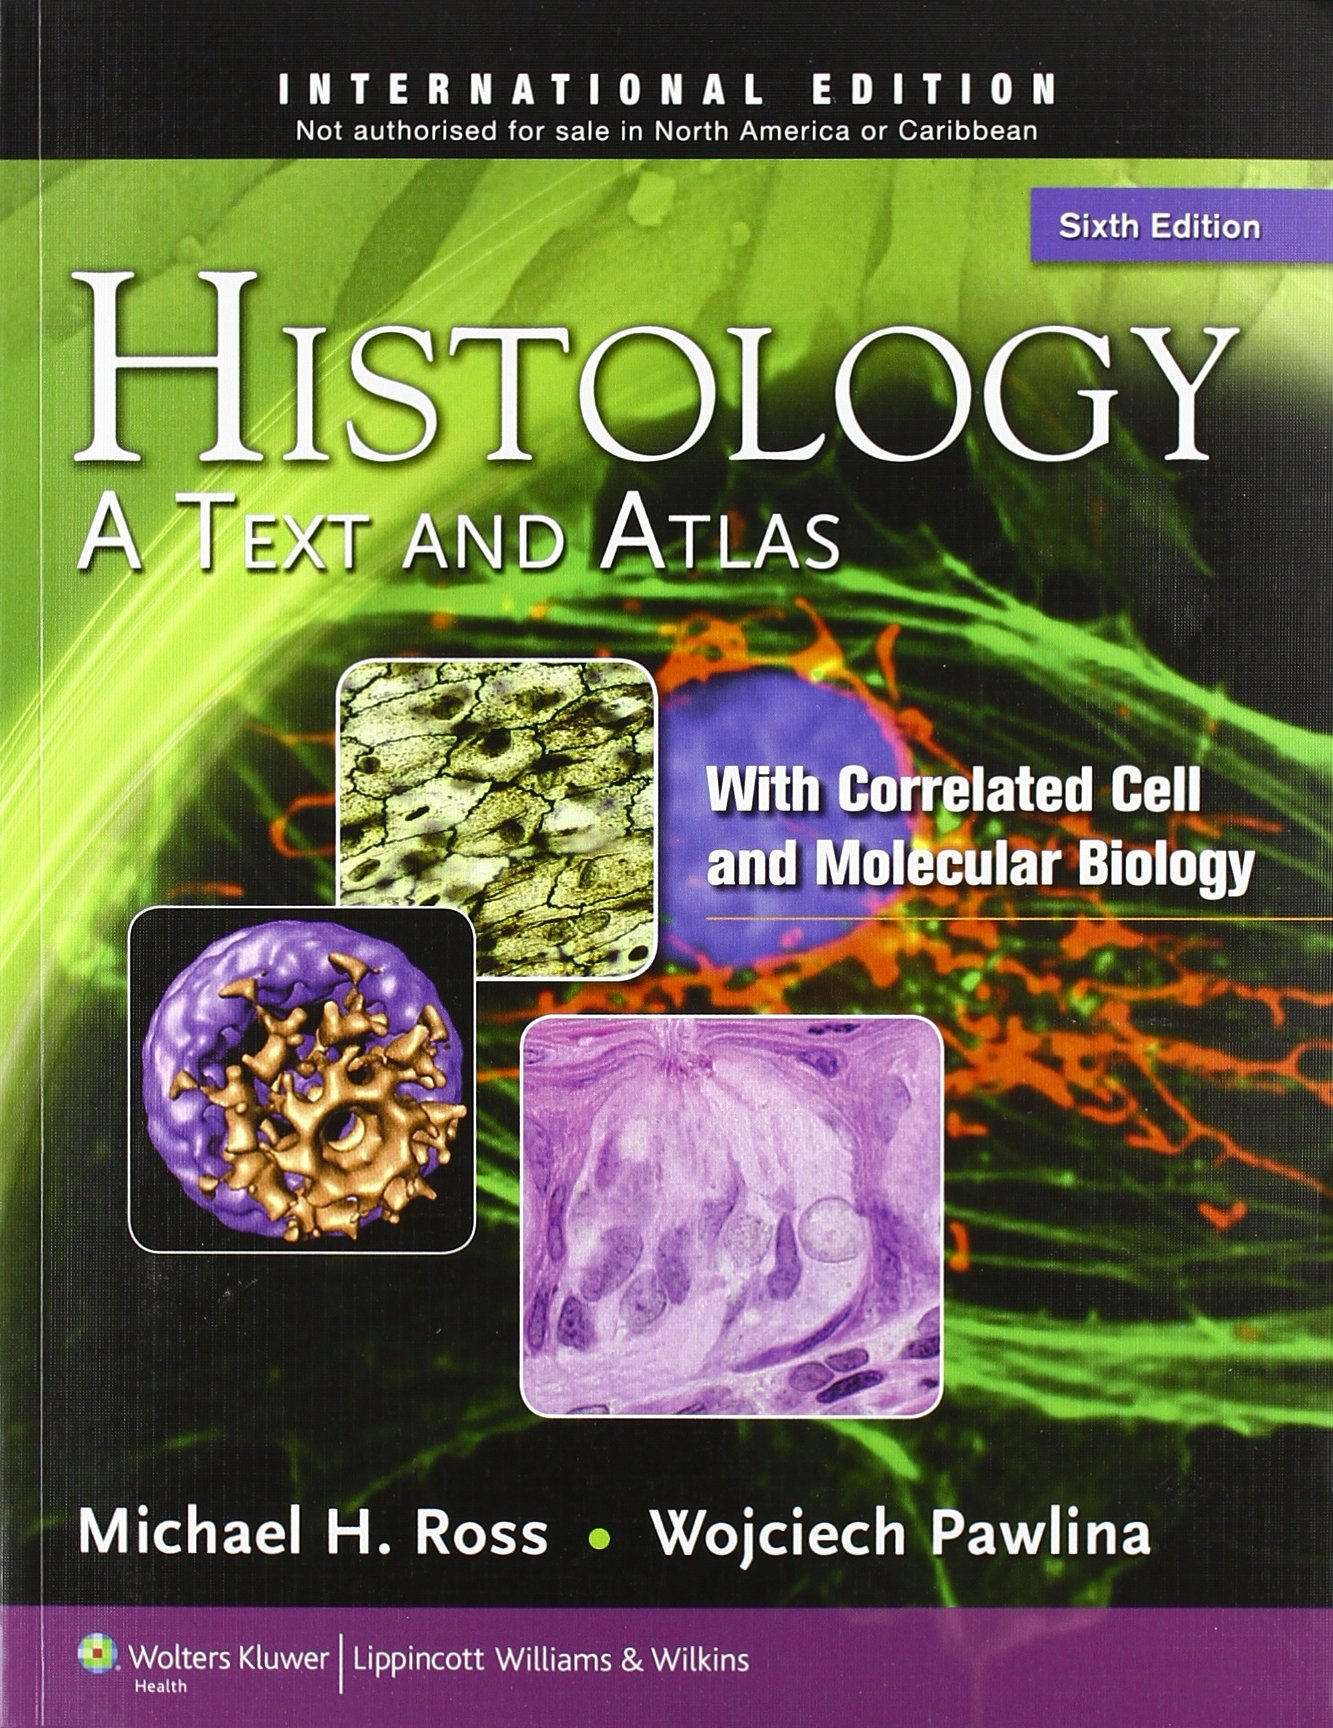 Histology: A Text and Atlas: With Correlated Cell and Molecular Biology (International Edition)